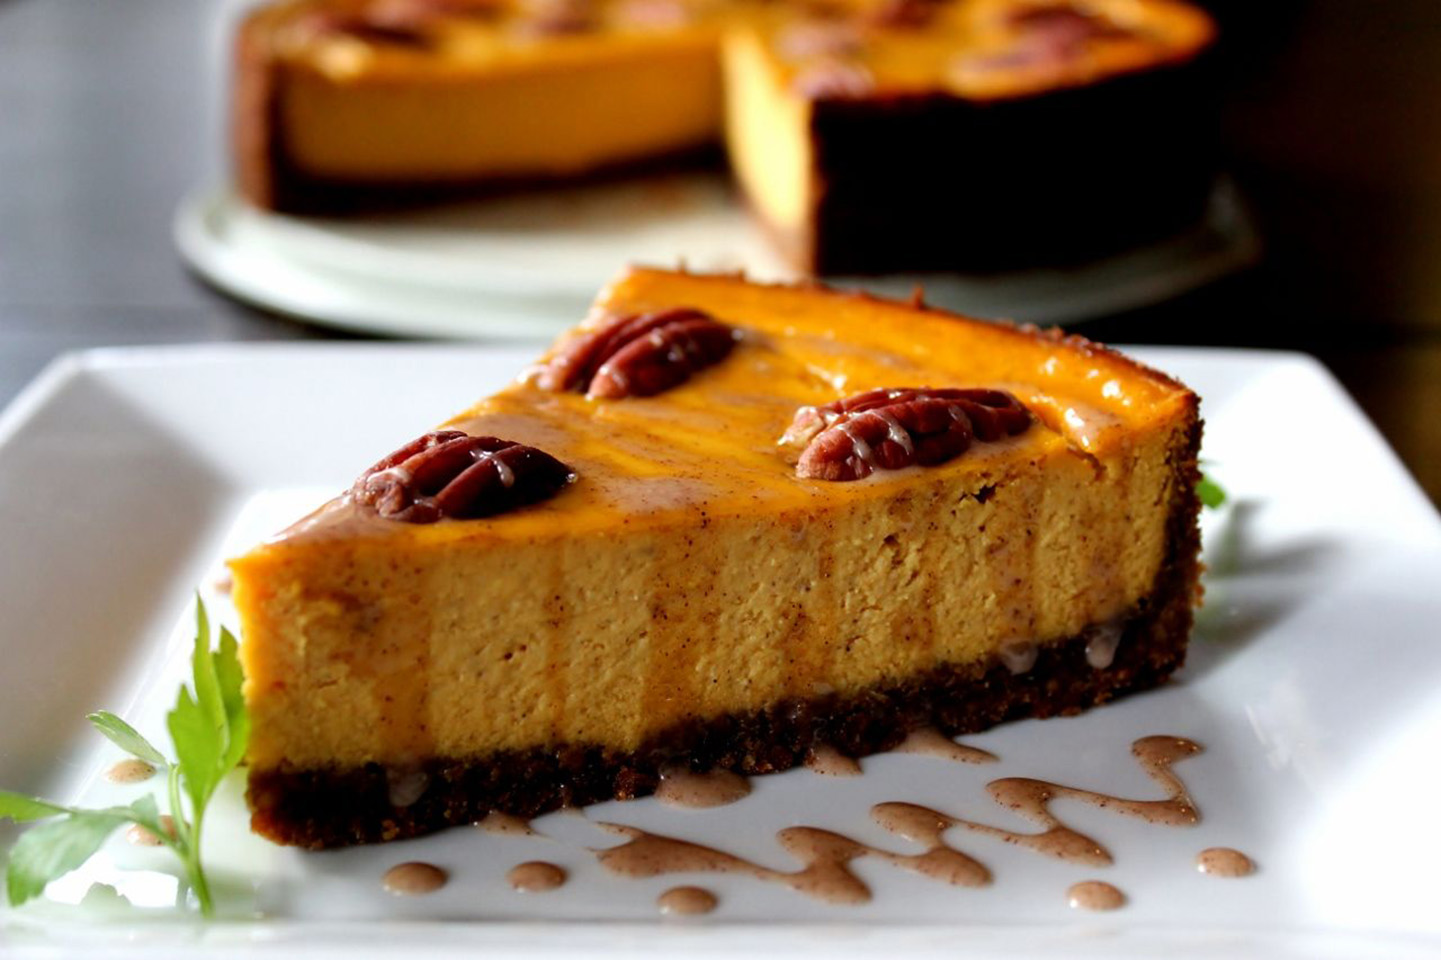 Carrot Cheesecake with Crumb Crust Suzanne Stull